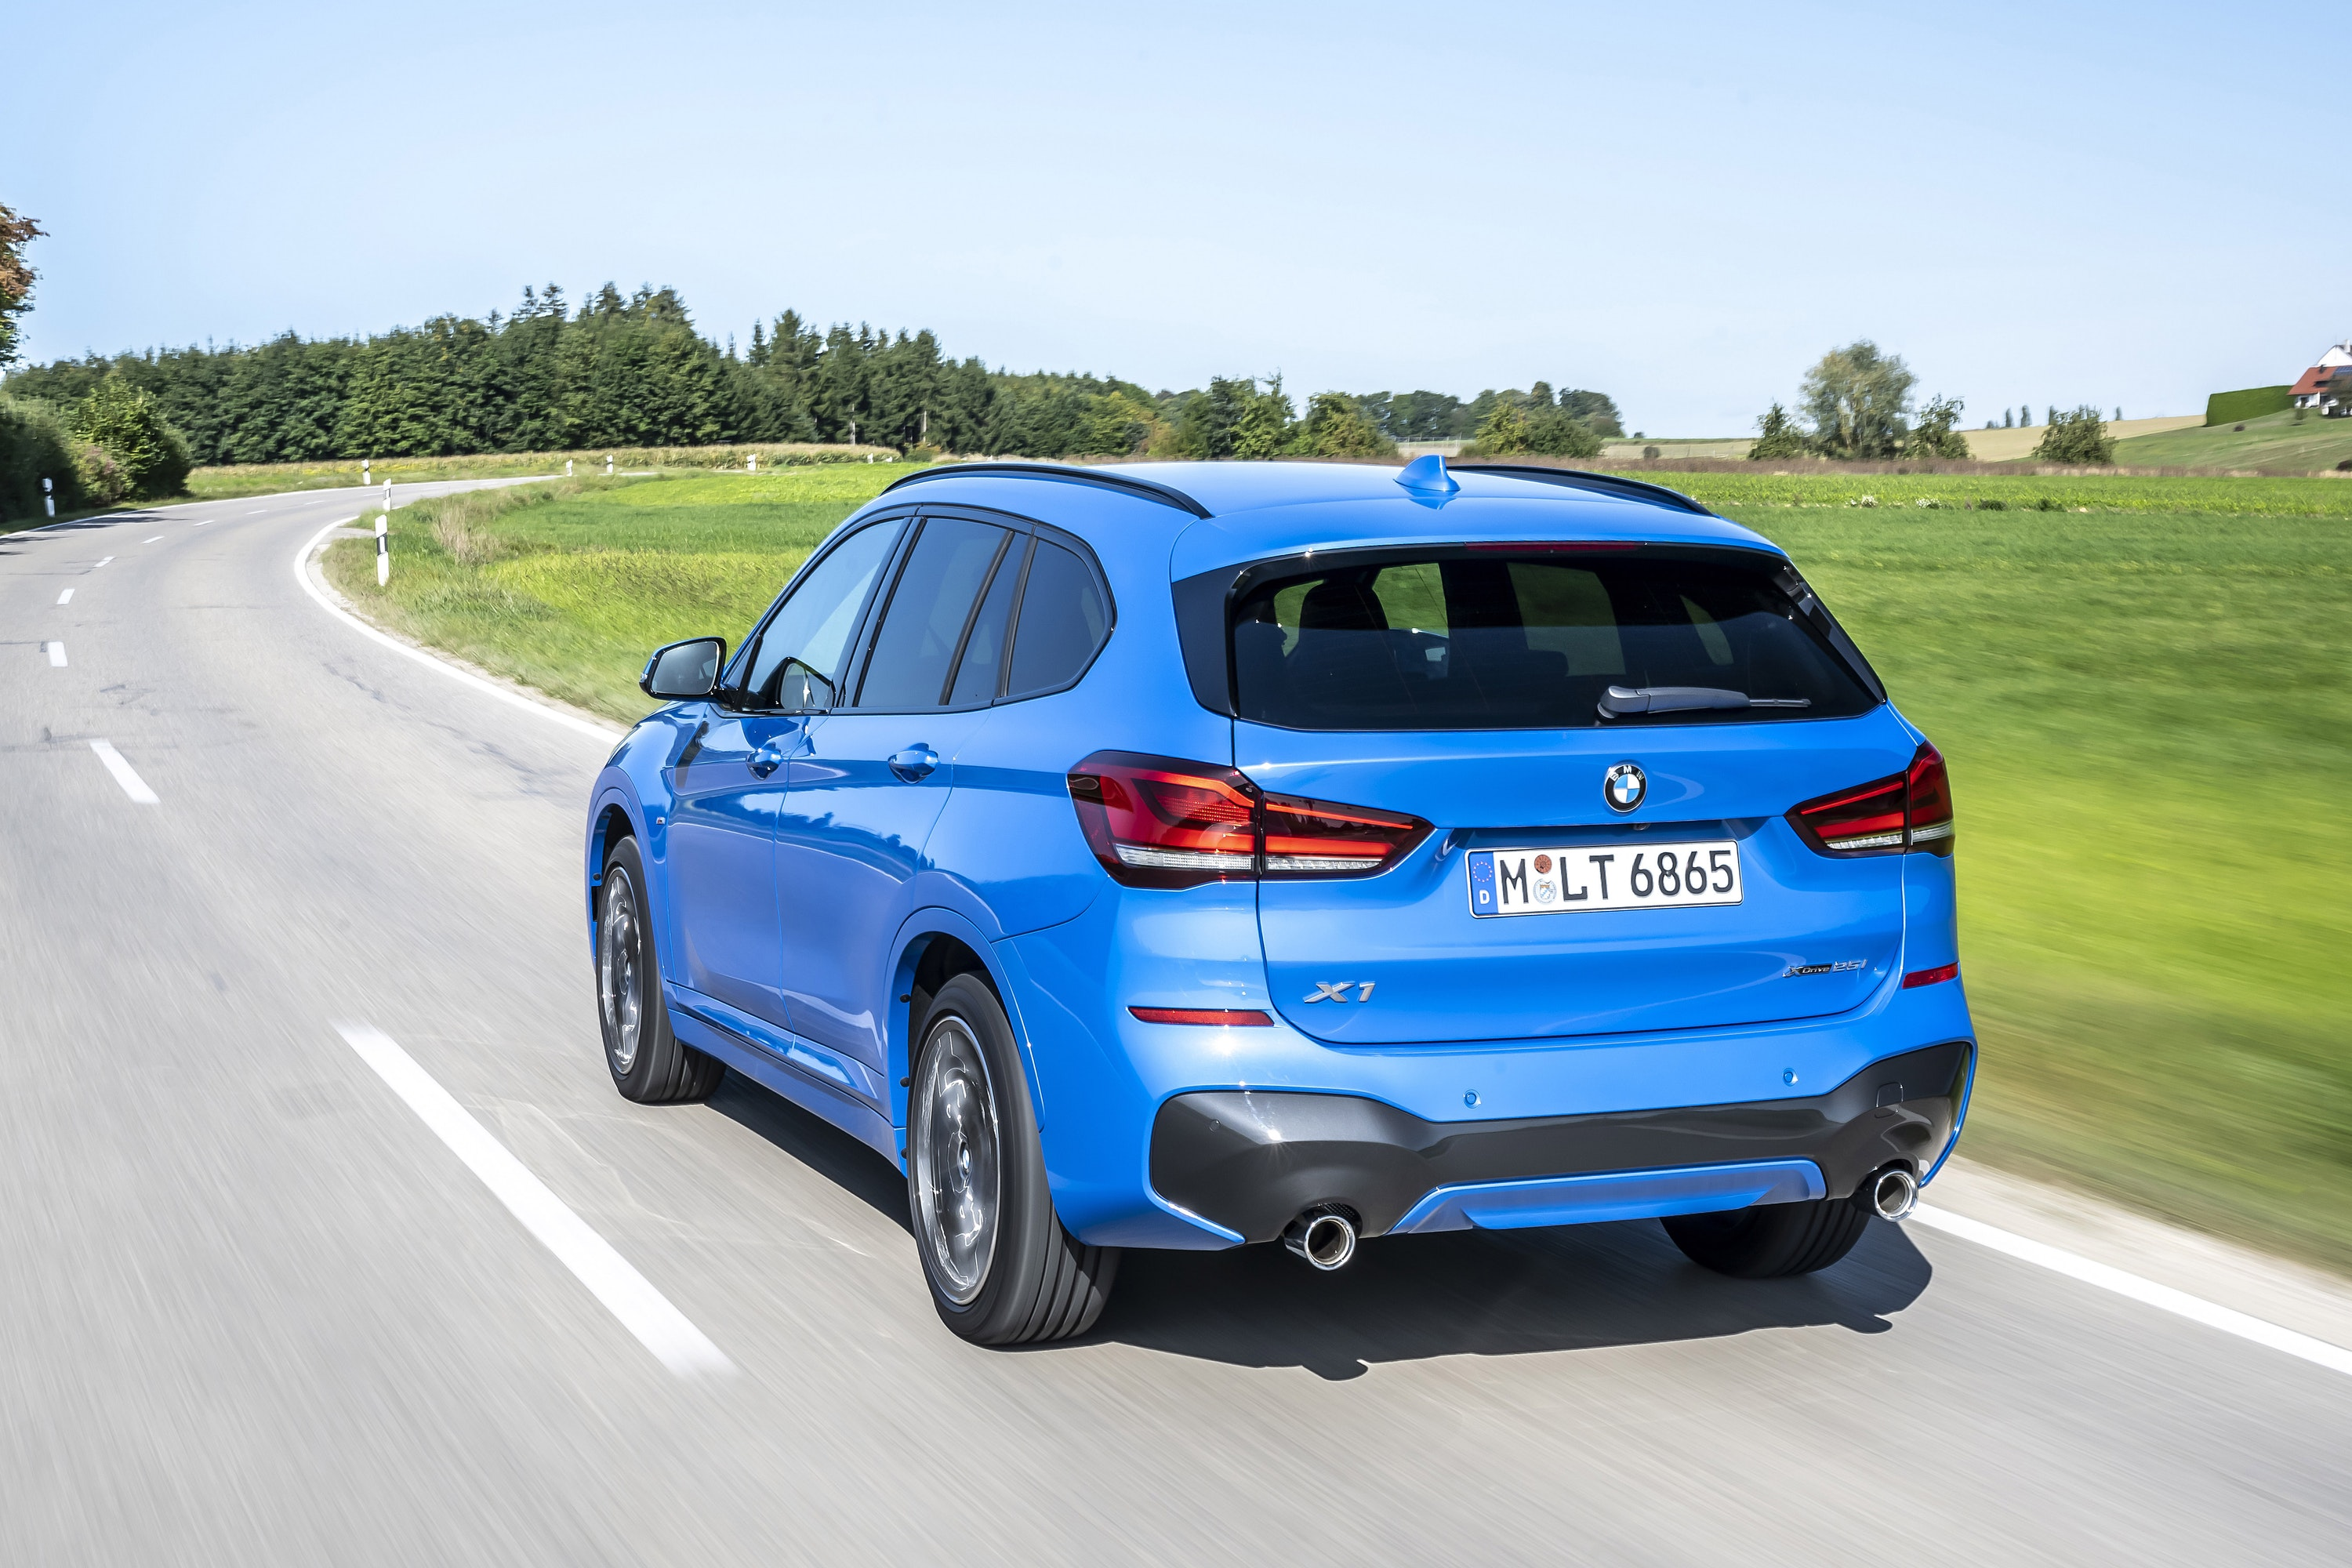 Rear view of a BMW X1 driving on a road